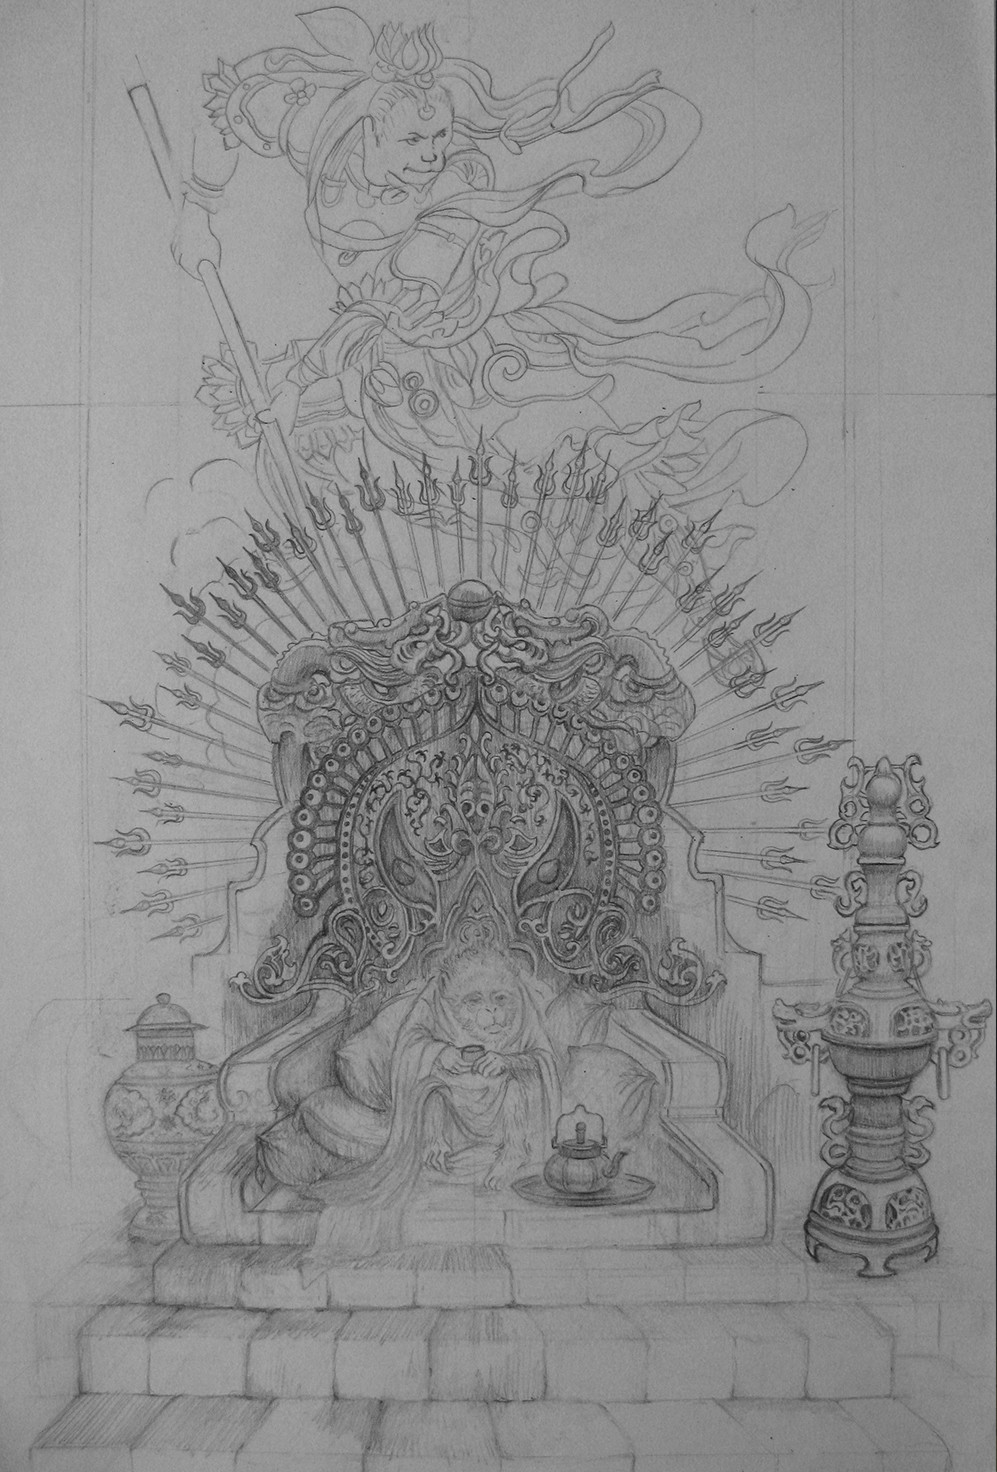 Robert baird immortal monkey king sketch2